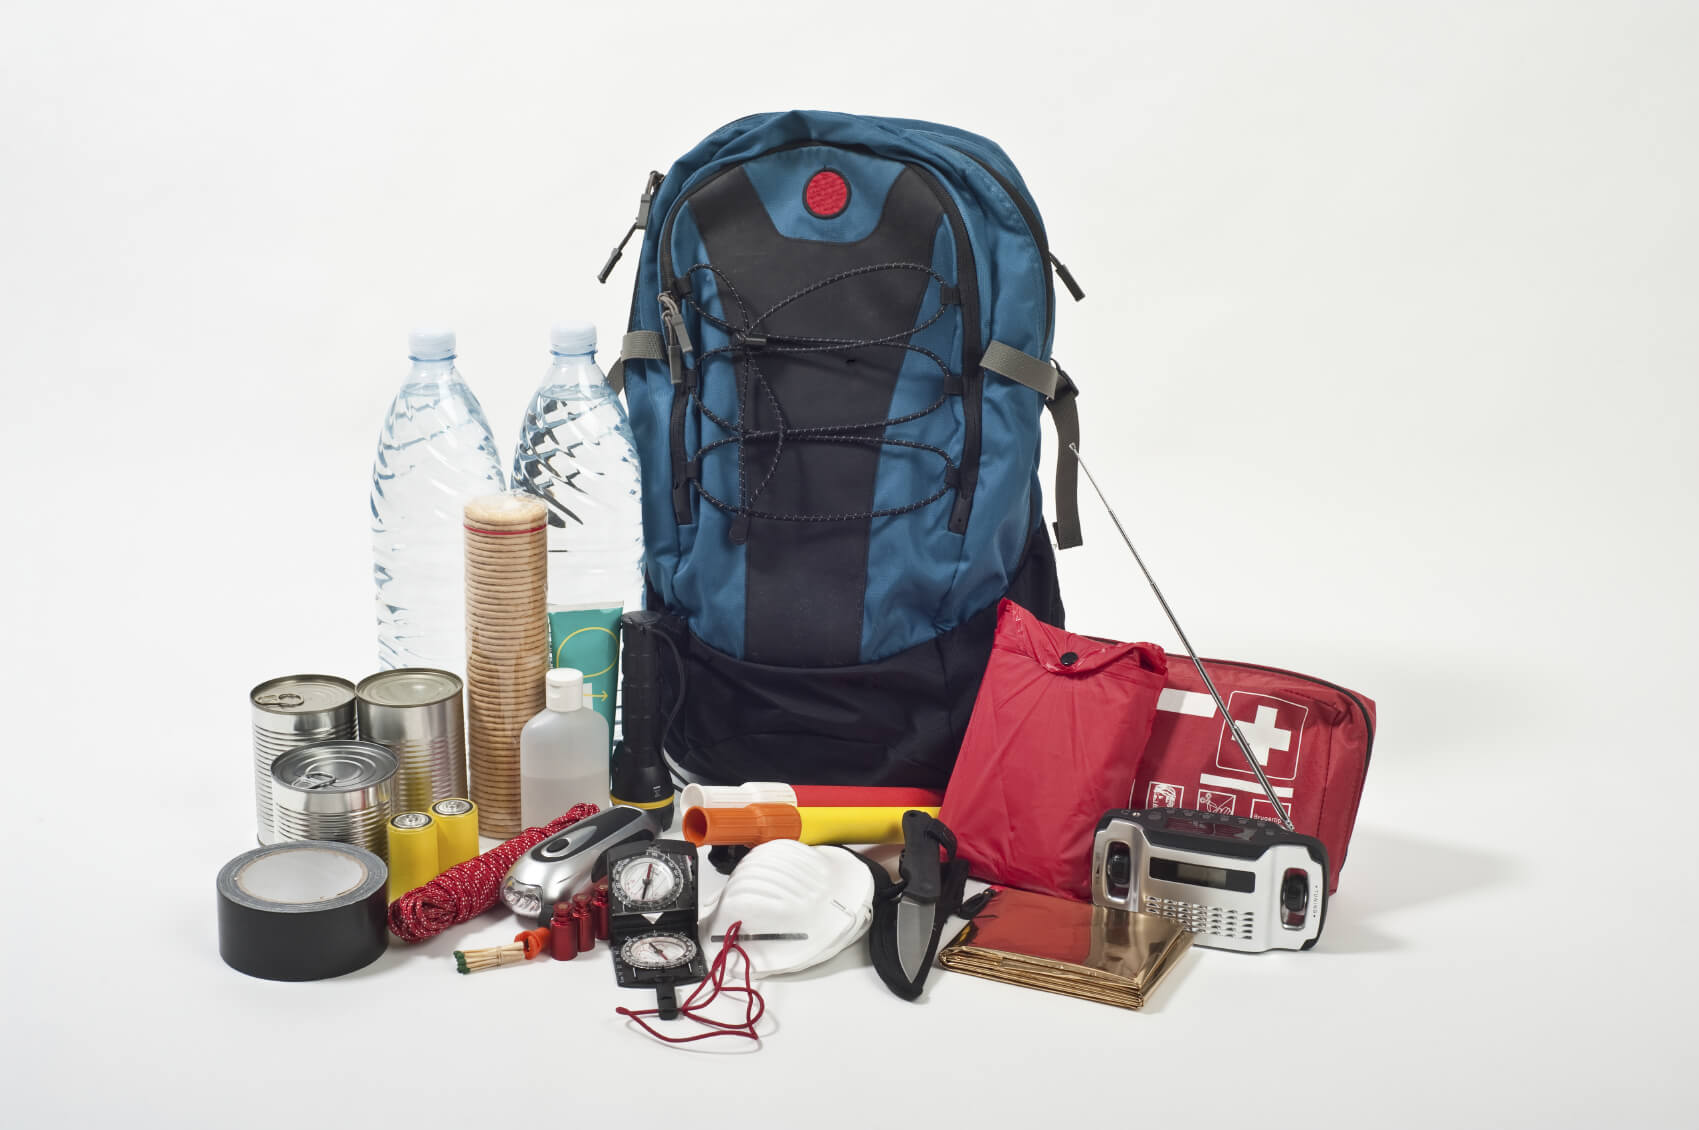 INTRO TO WILDERNESS SURVIVAL AND EMERGENCY PREPAREDNESS